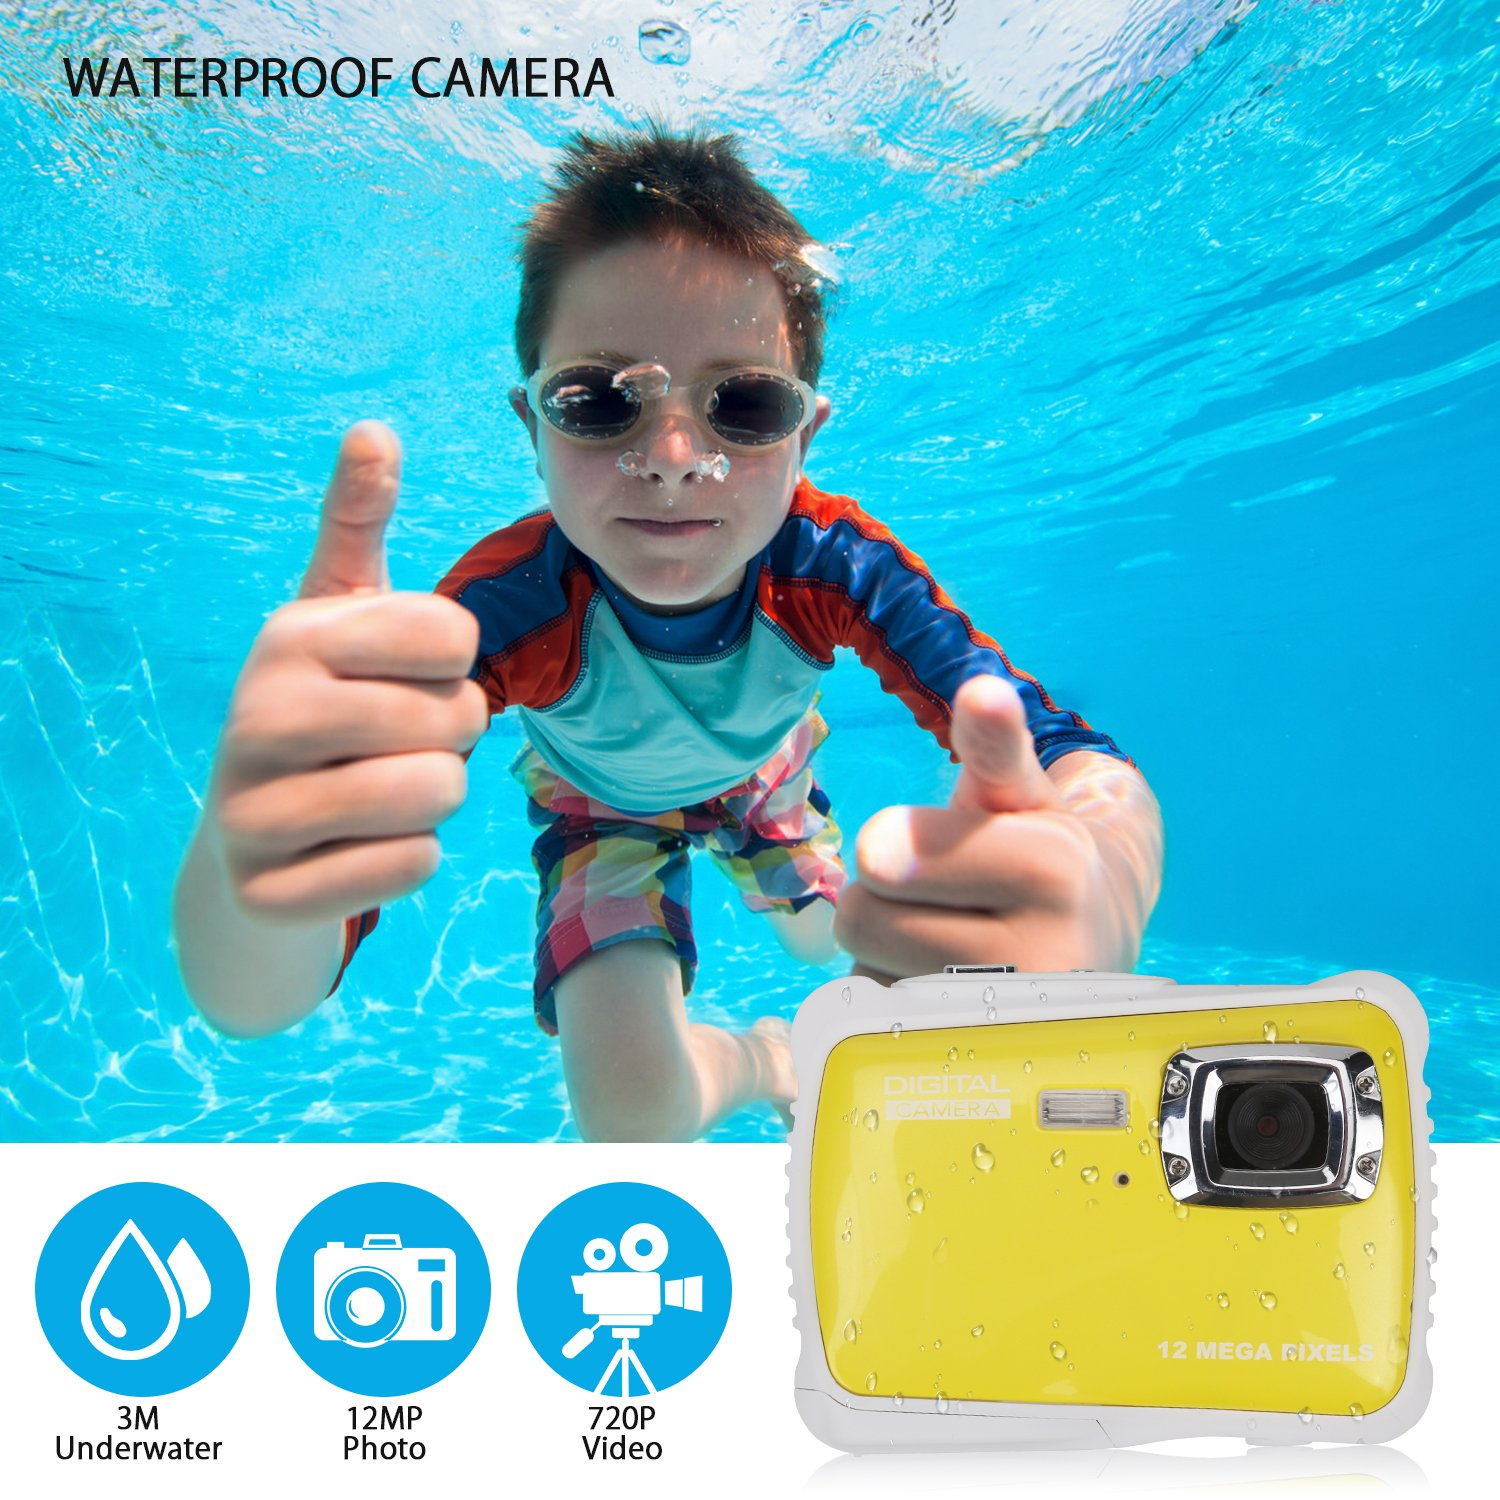 BOMEON Waterproof Camera for Kids Underwater Action Camera Camcorder with 12MP HD 8X Digital Zoom Flash Mic 2.0 Inch LCD Display with 8G SD Card 3 Non-Rechargeable Batteries Included by BOMEON (Image #3)